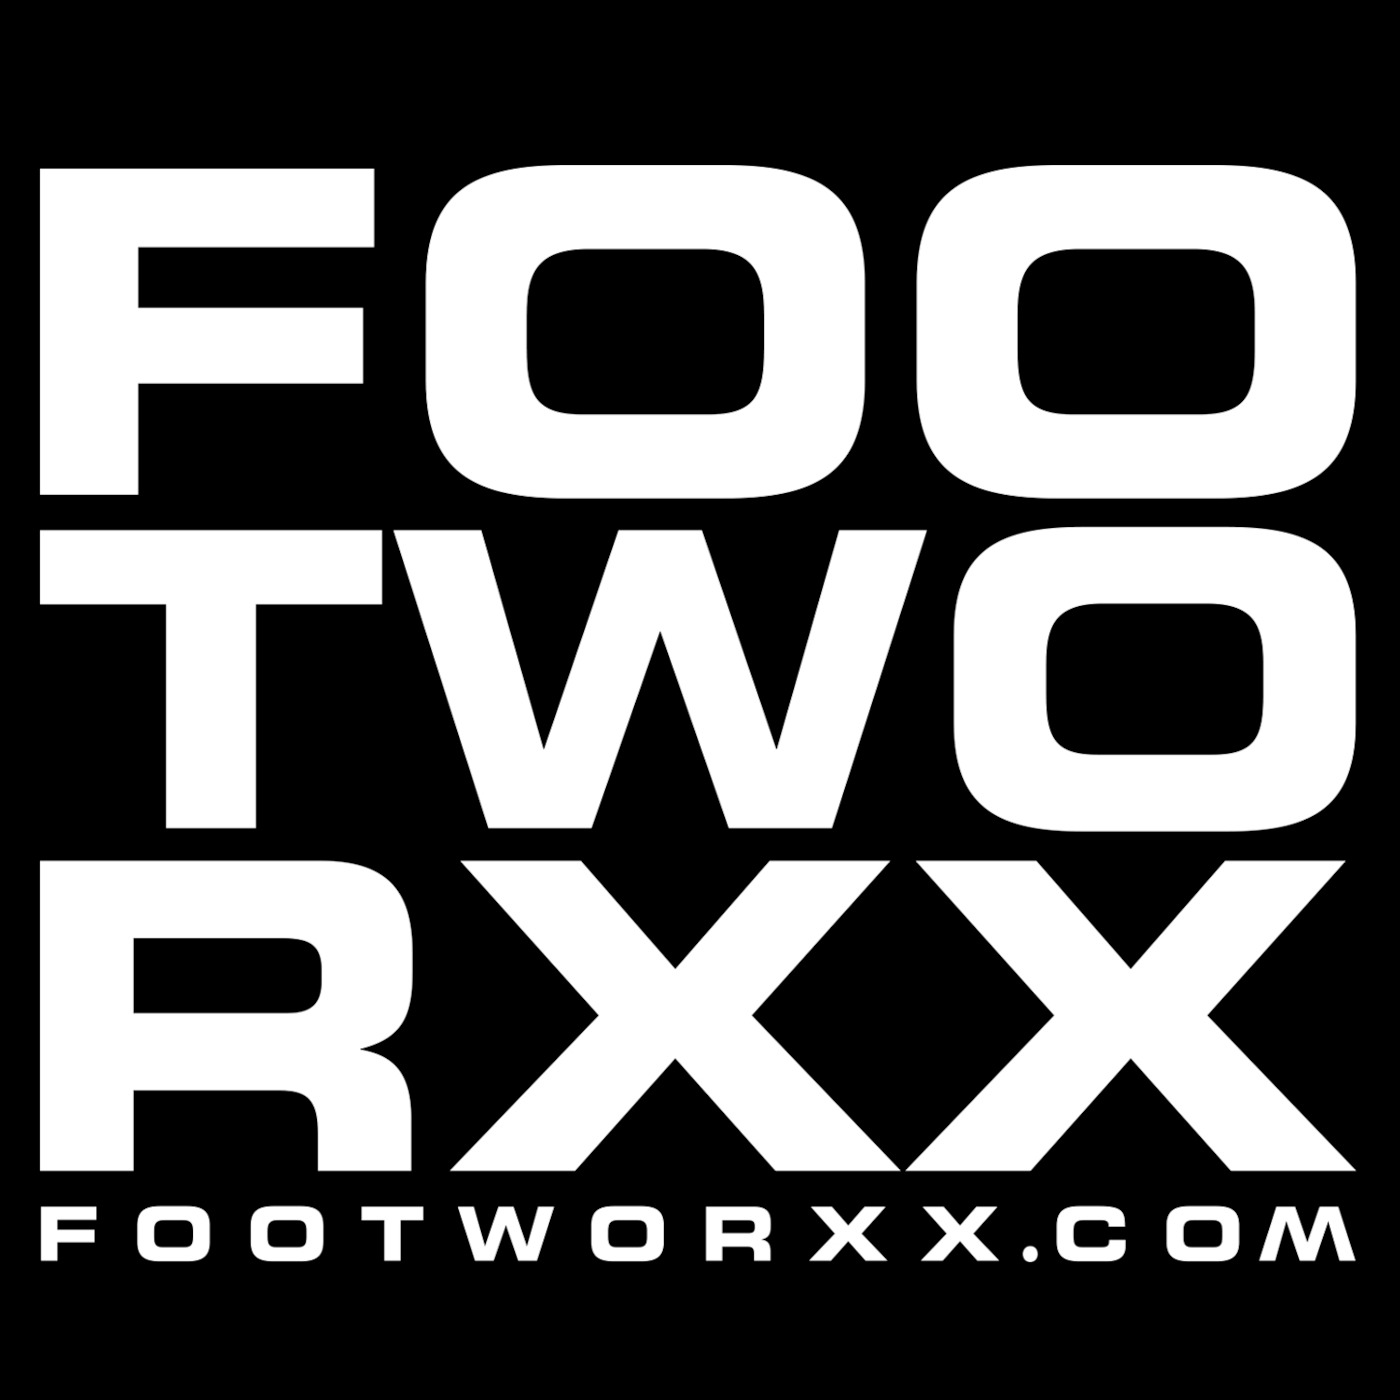 Footworxx's Podcast